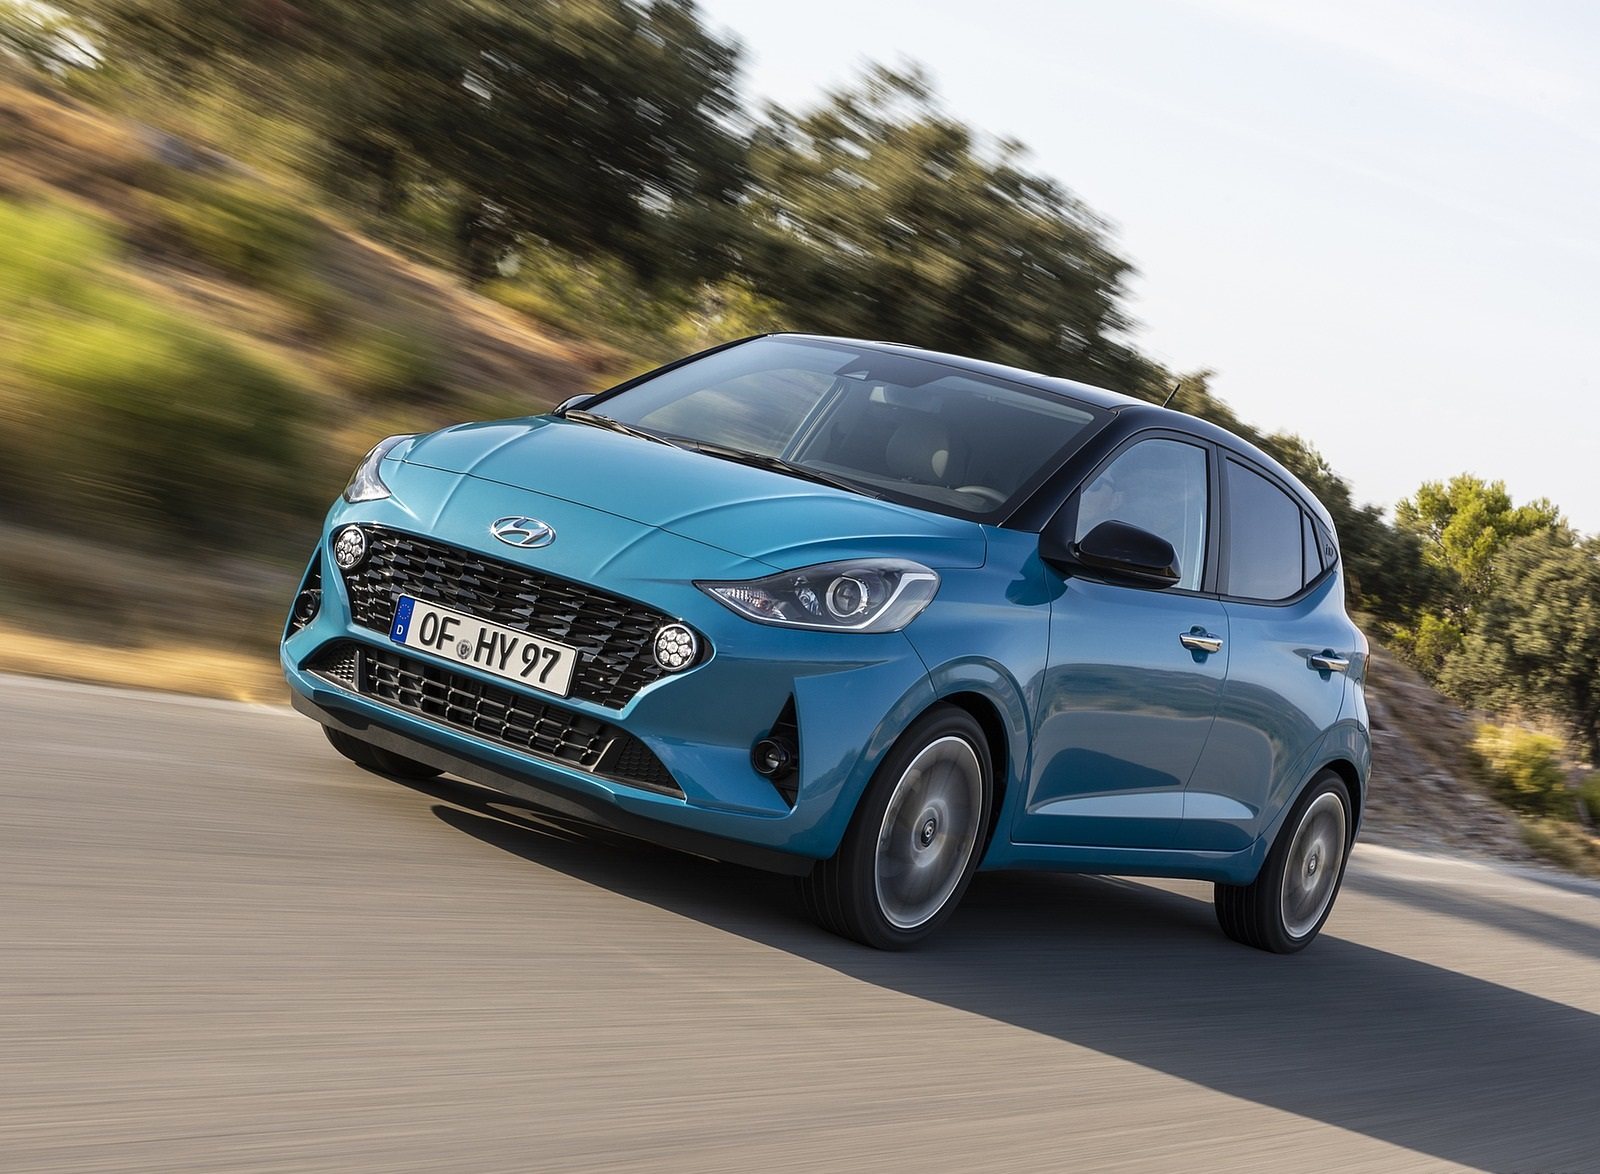 2020 Hyundai i10 Front Three-Quarter Wallpapers #48 of 80